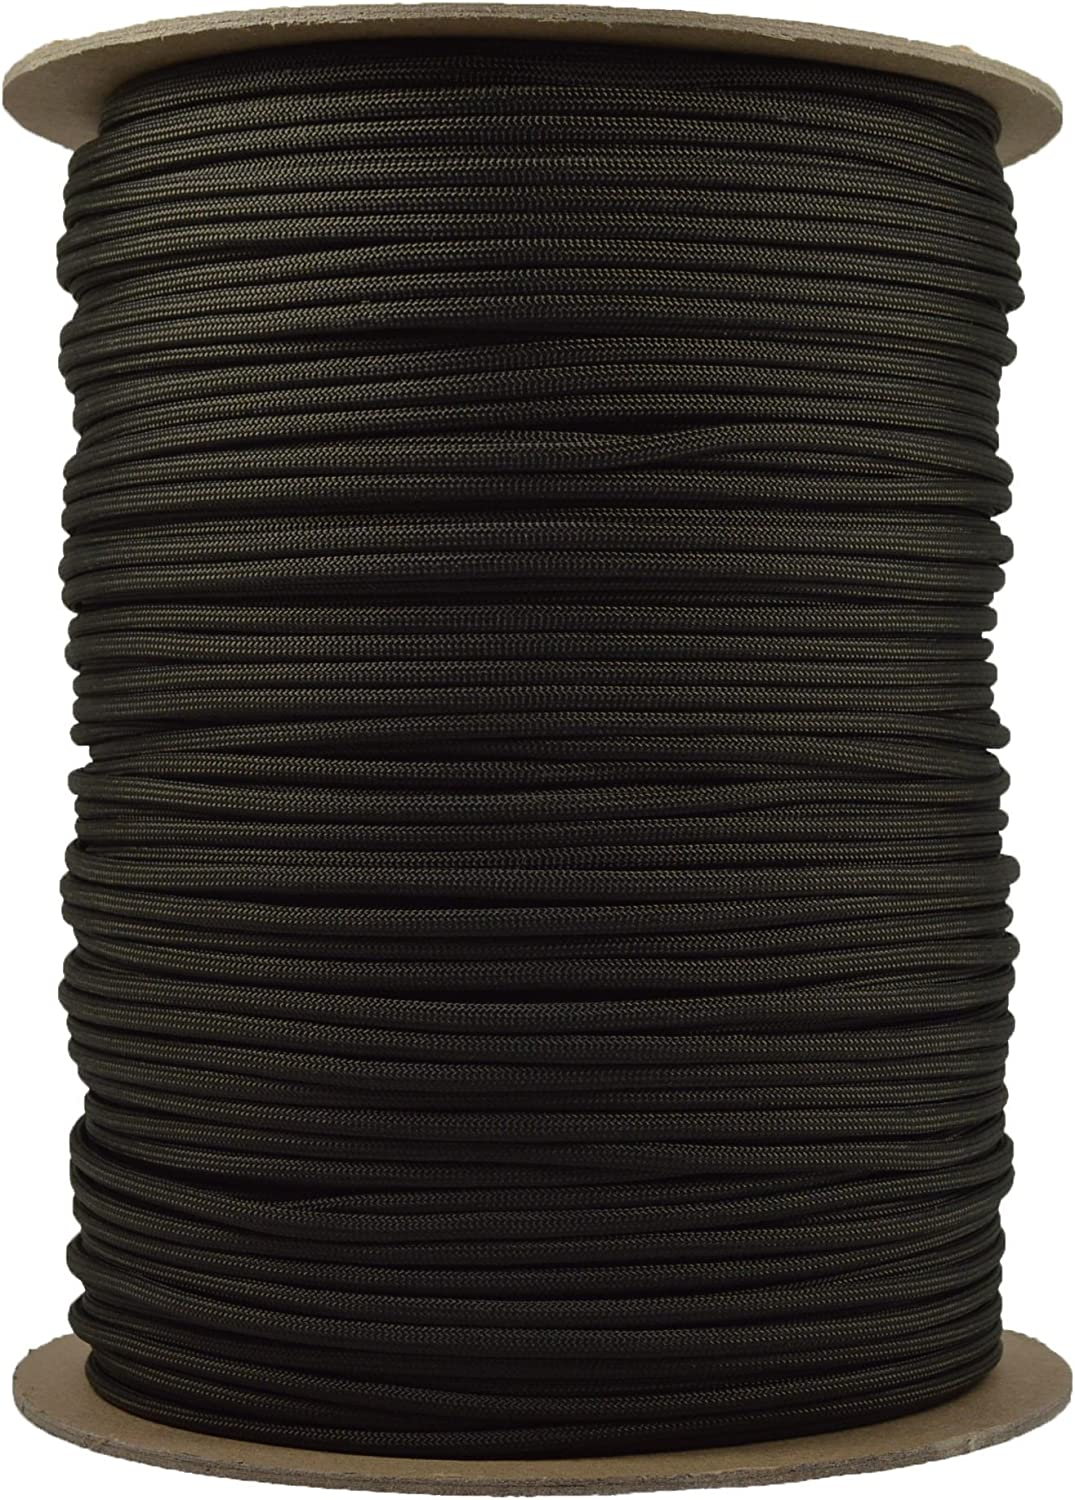 BoredParacord Brand Paracord 1000 ft. Spool Drab Olive Al Max 52% OFF sold out. -